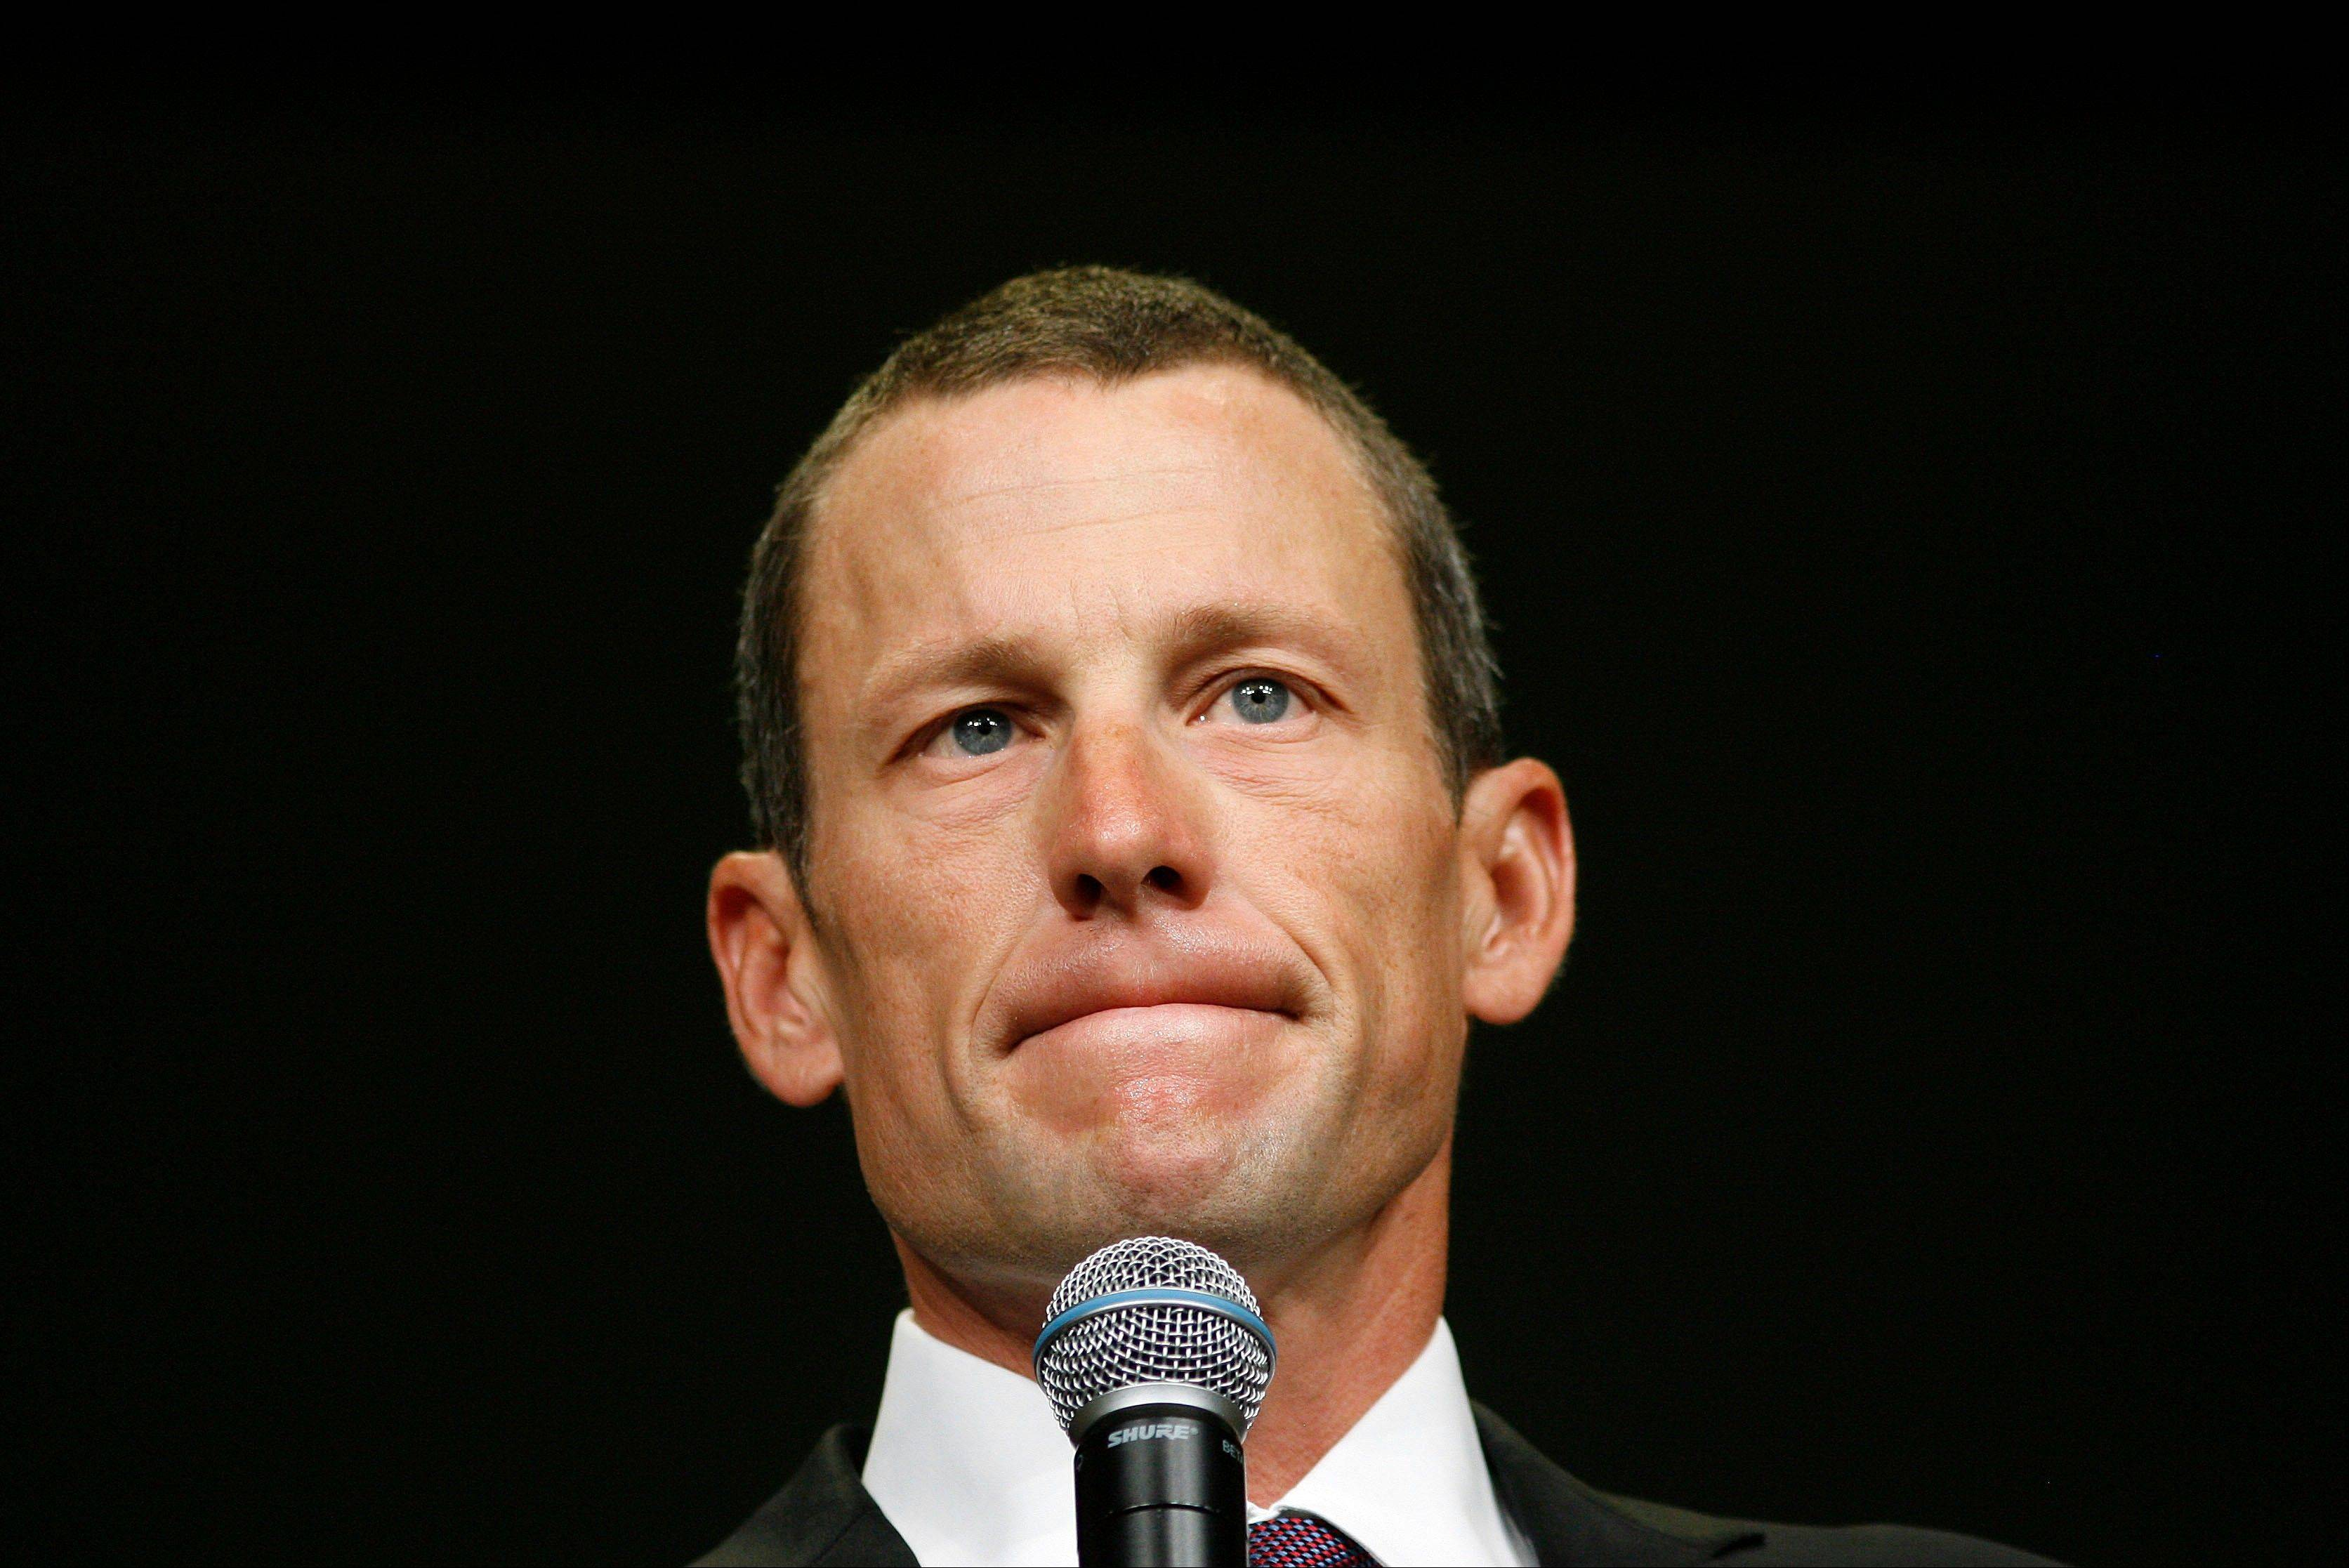 Source: Armstrong tells Livestrong staff 'I'm sorry'